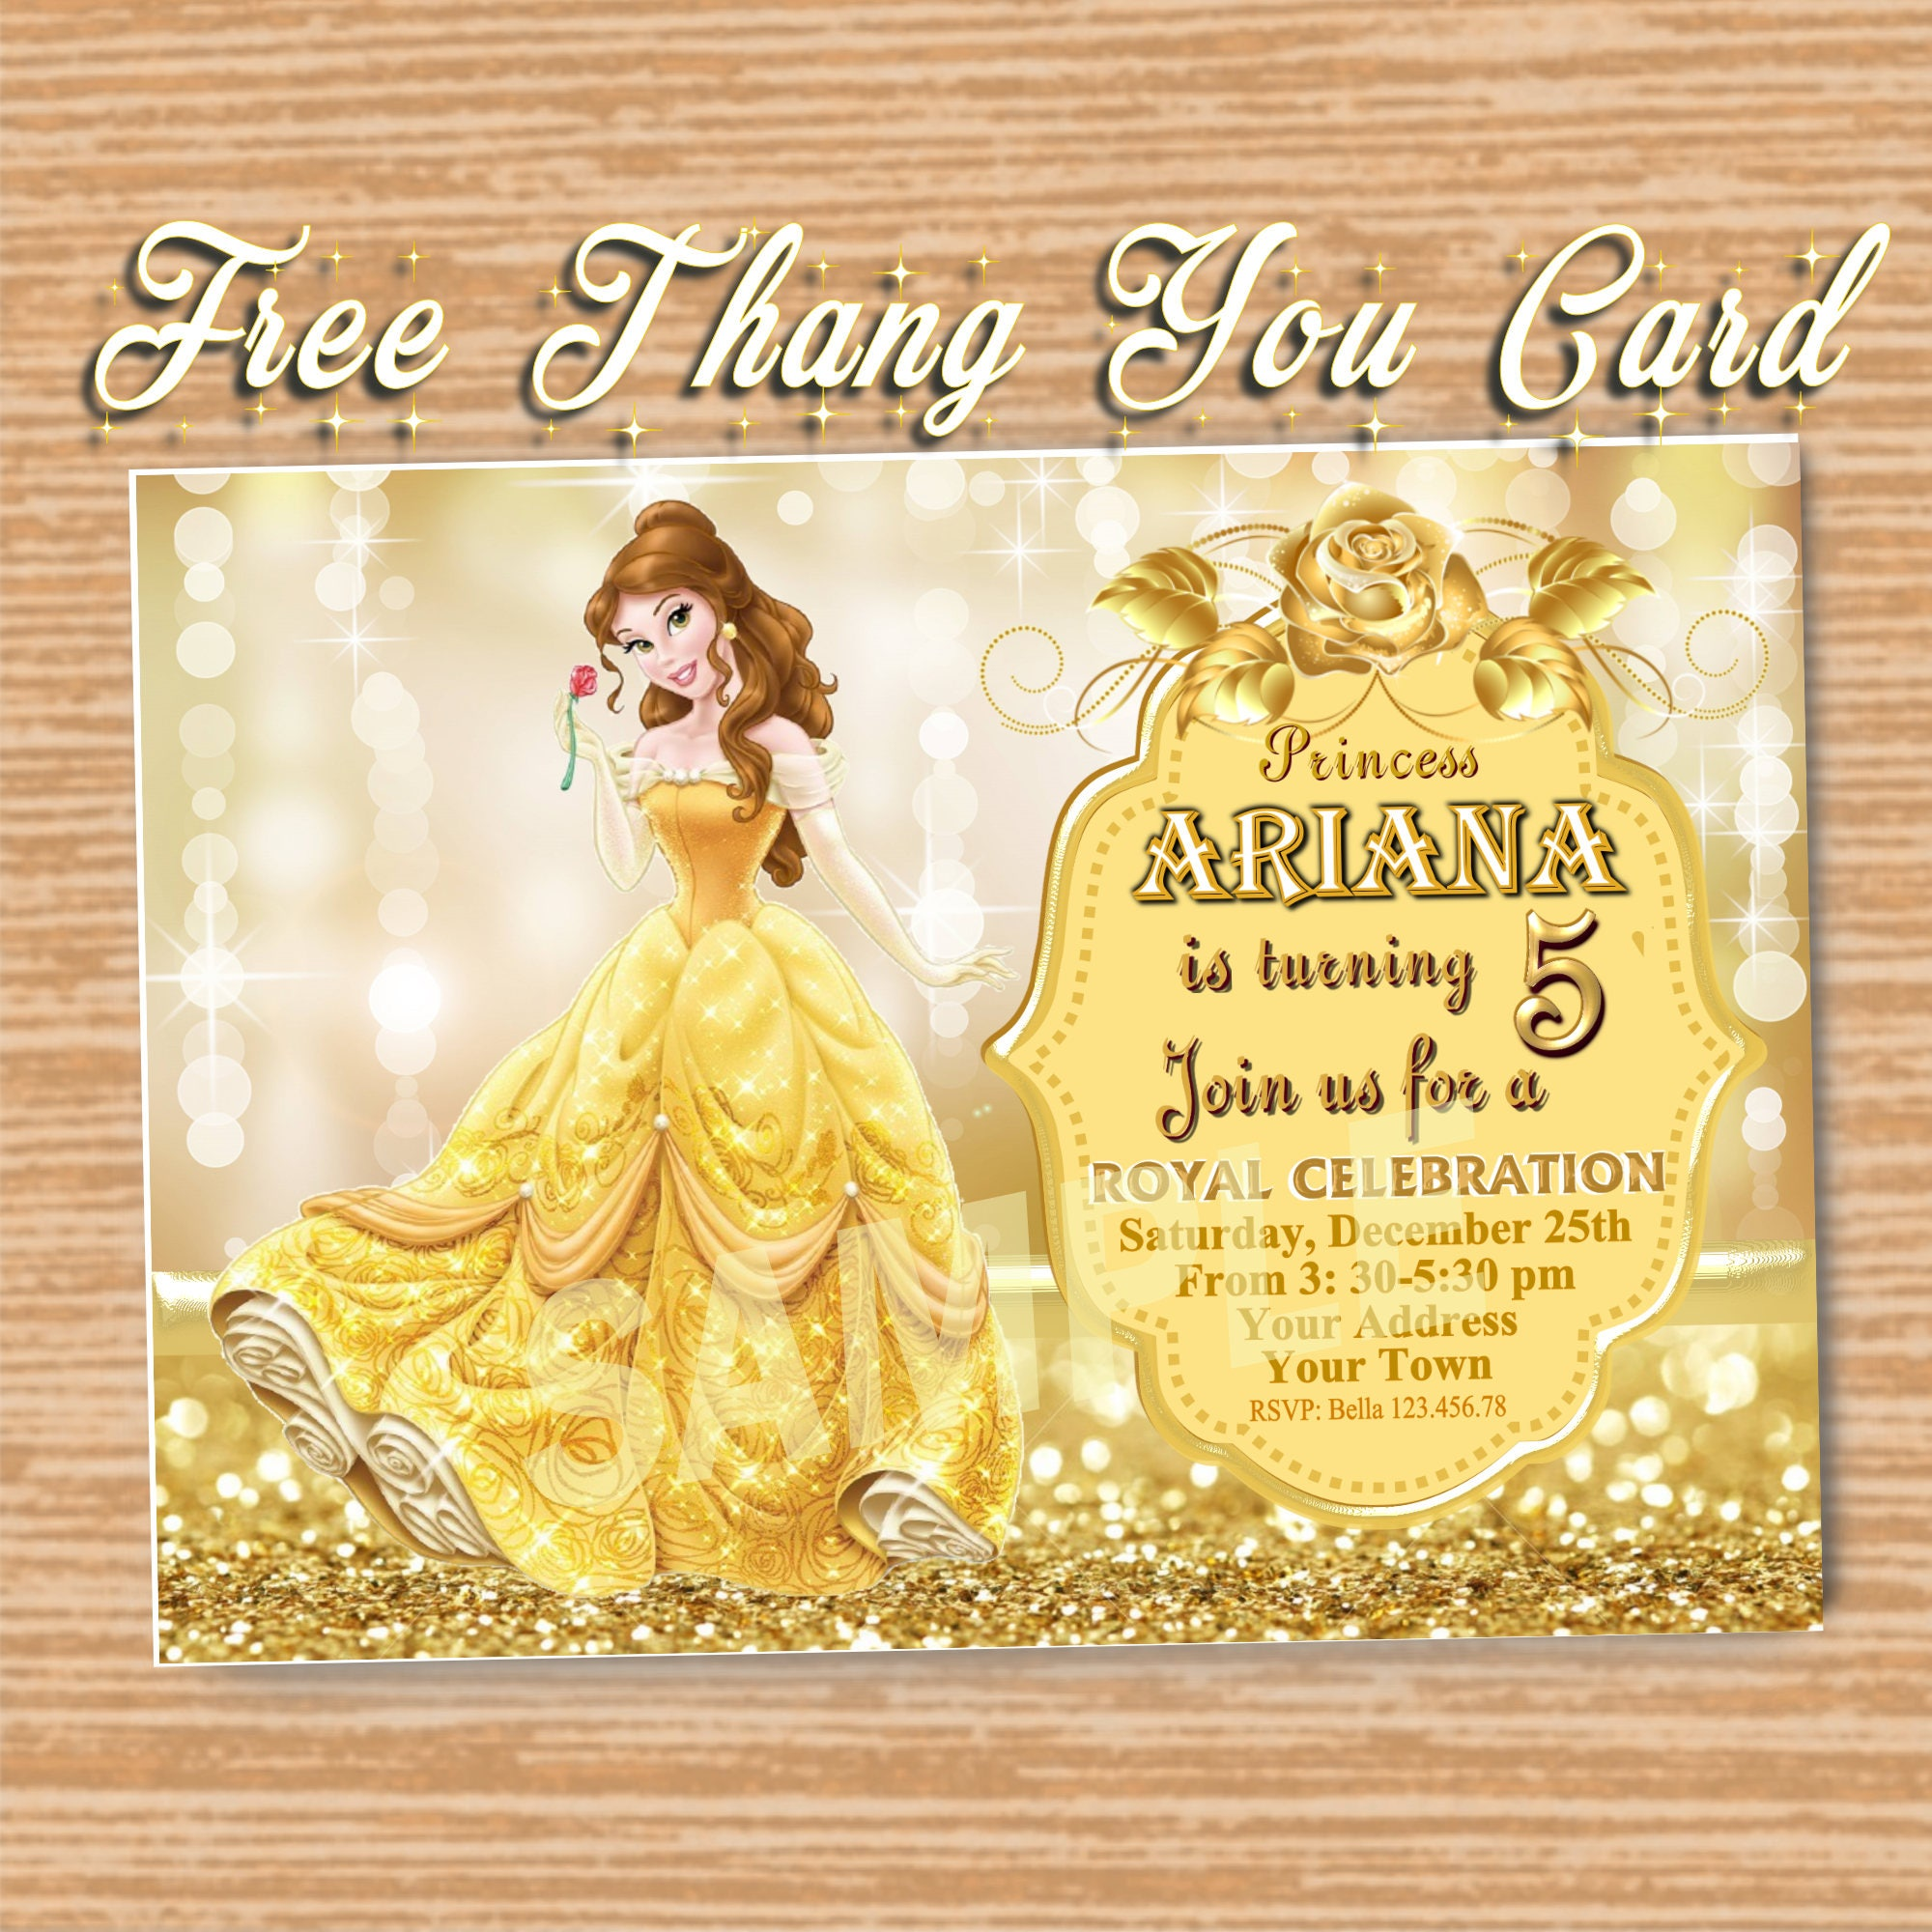 Beauty and the beast princess belle invitation 5x 7or 4x 6 beauty and the beast princess belle invitation 5x 7or 4 stopboris Choice Image